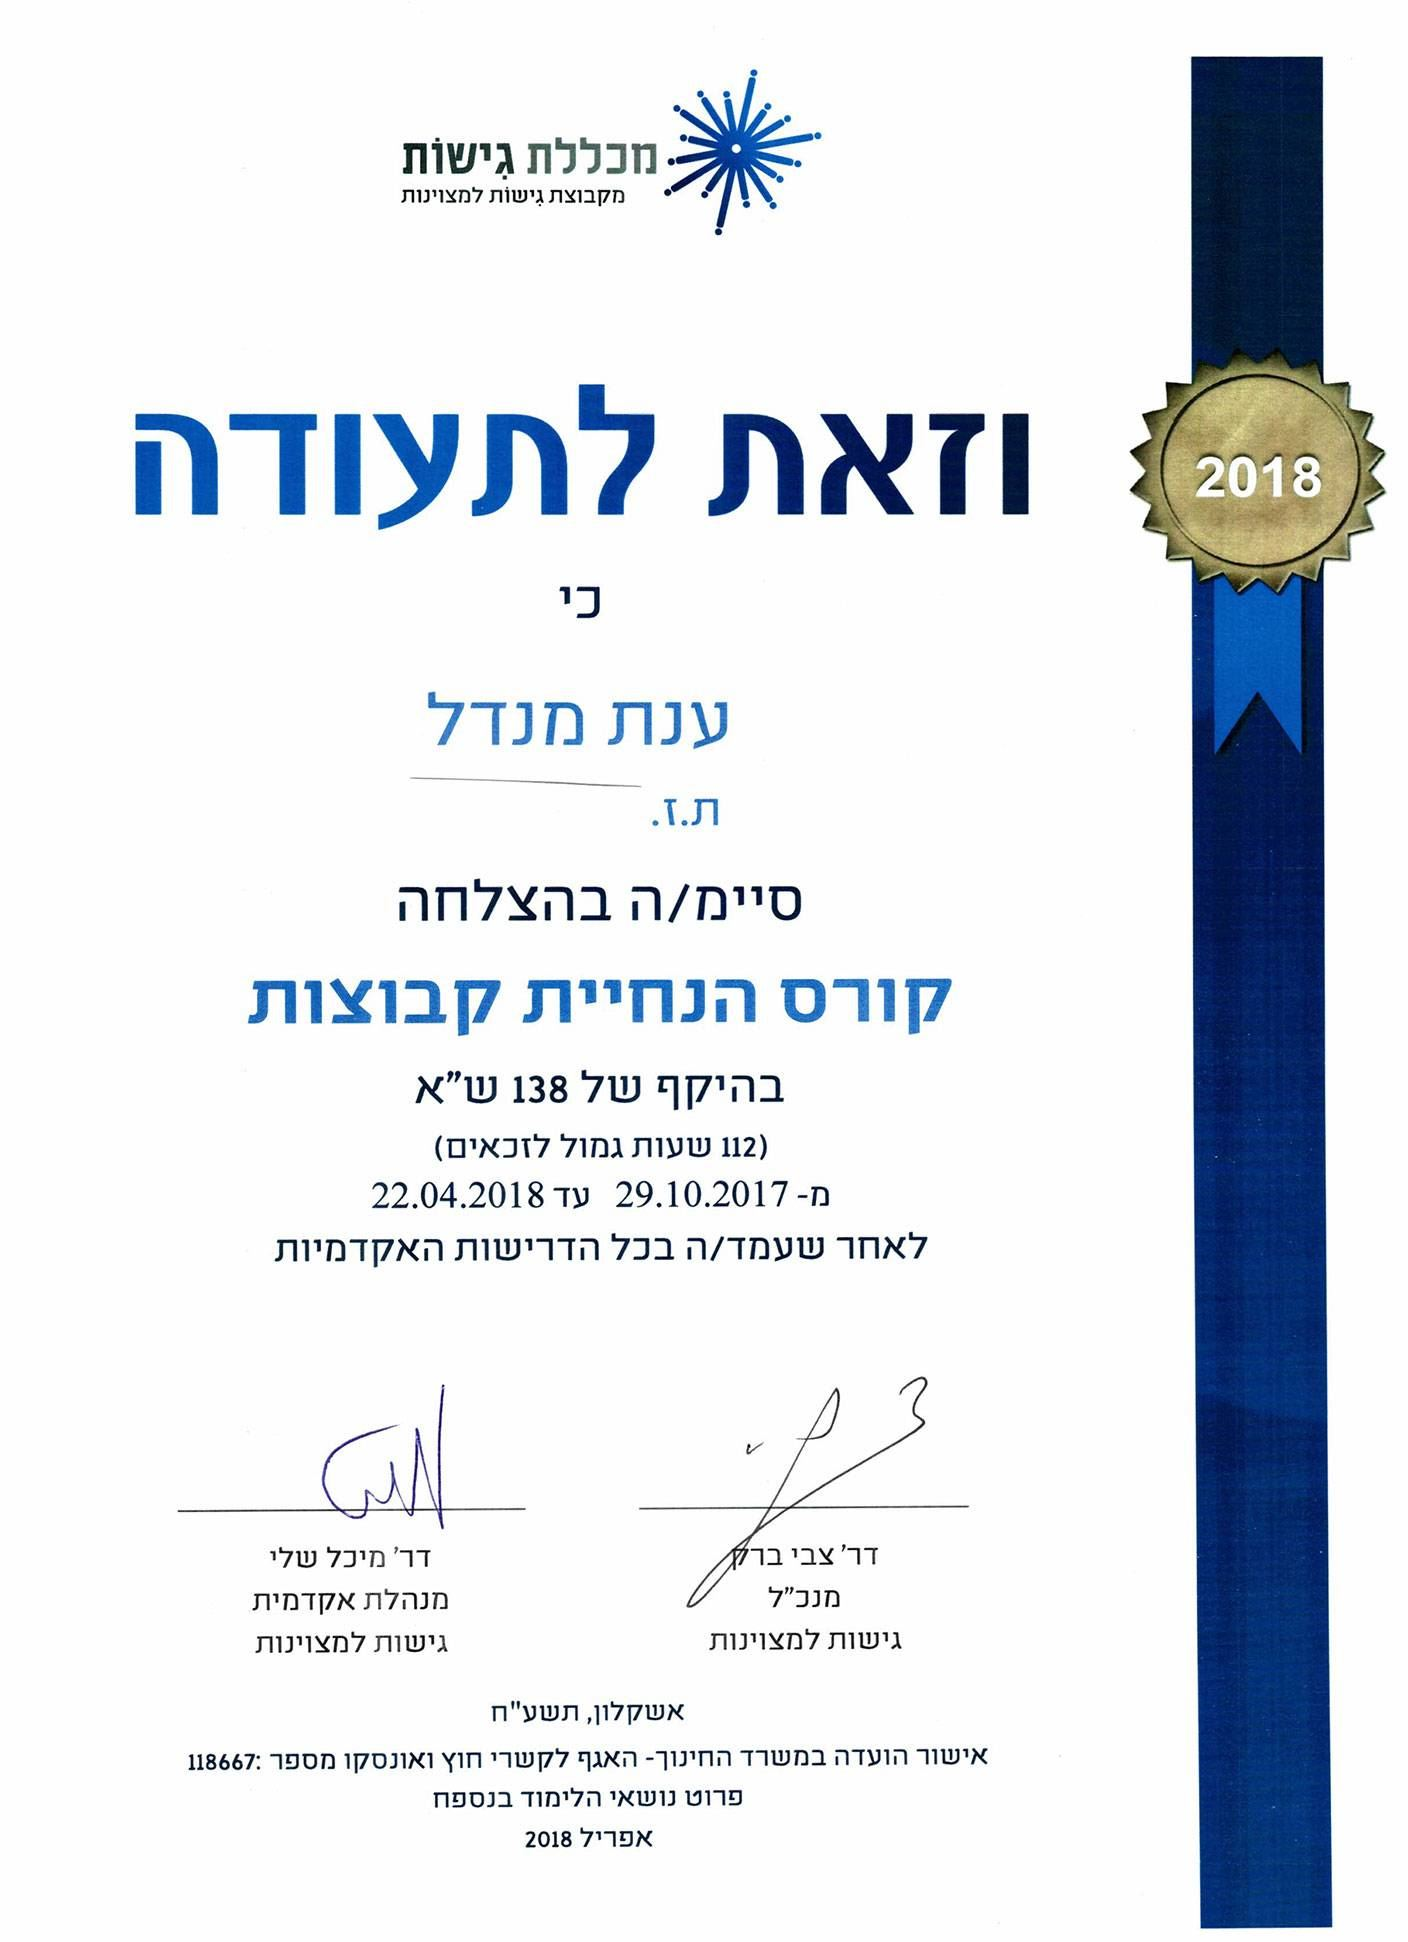 https://www.anatmandel.co.il/Uploads/ראשי/instructioncertificate.jpg